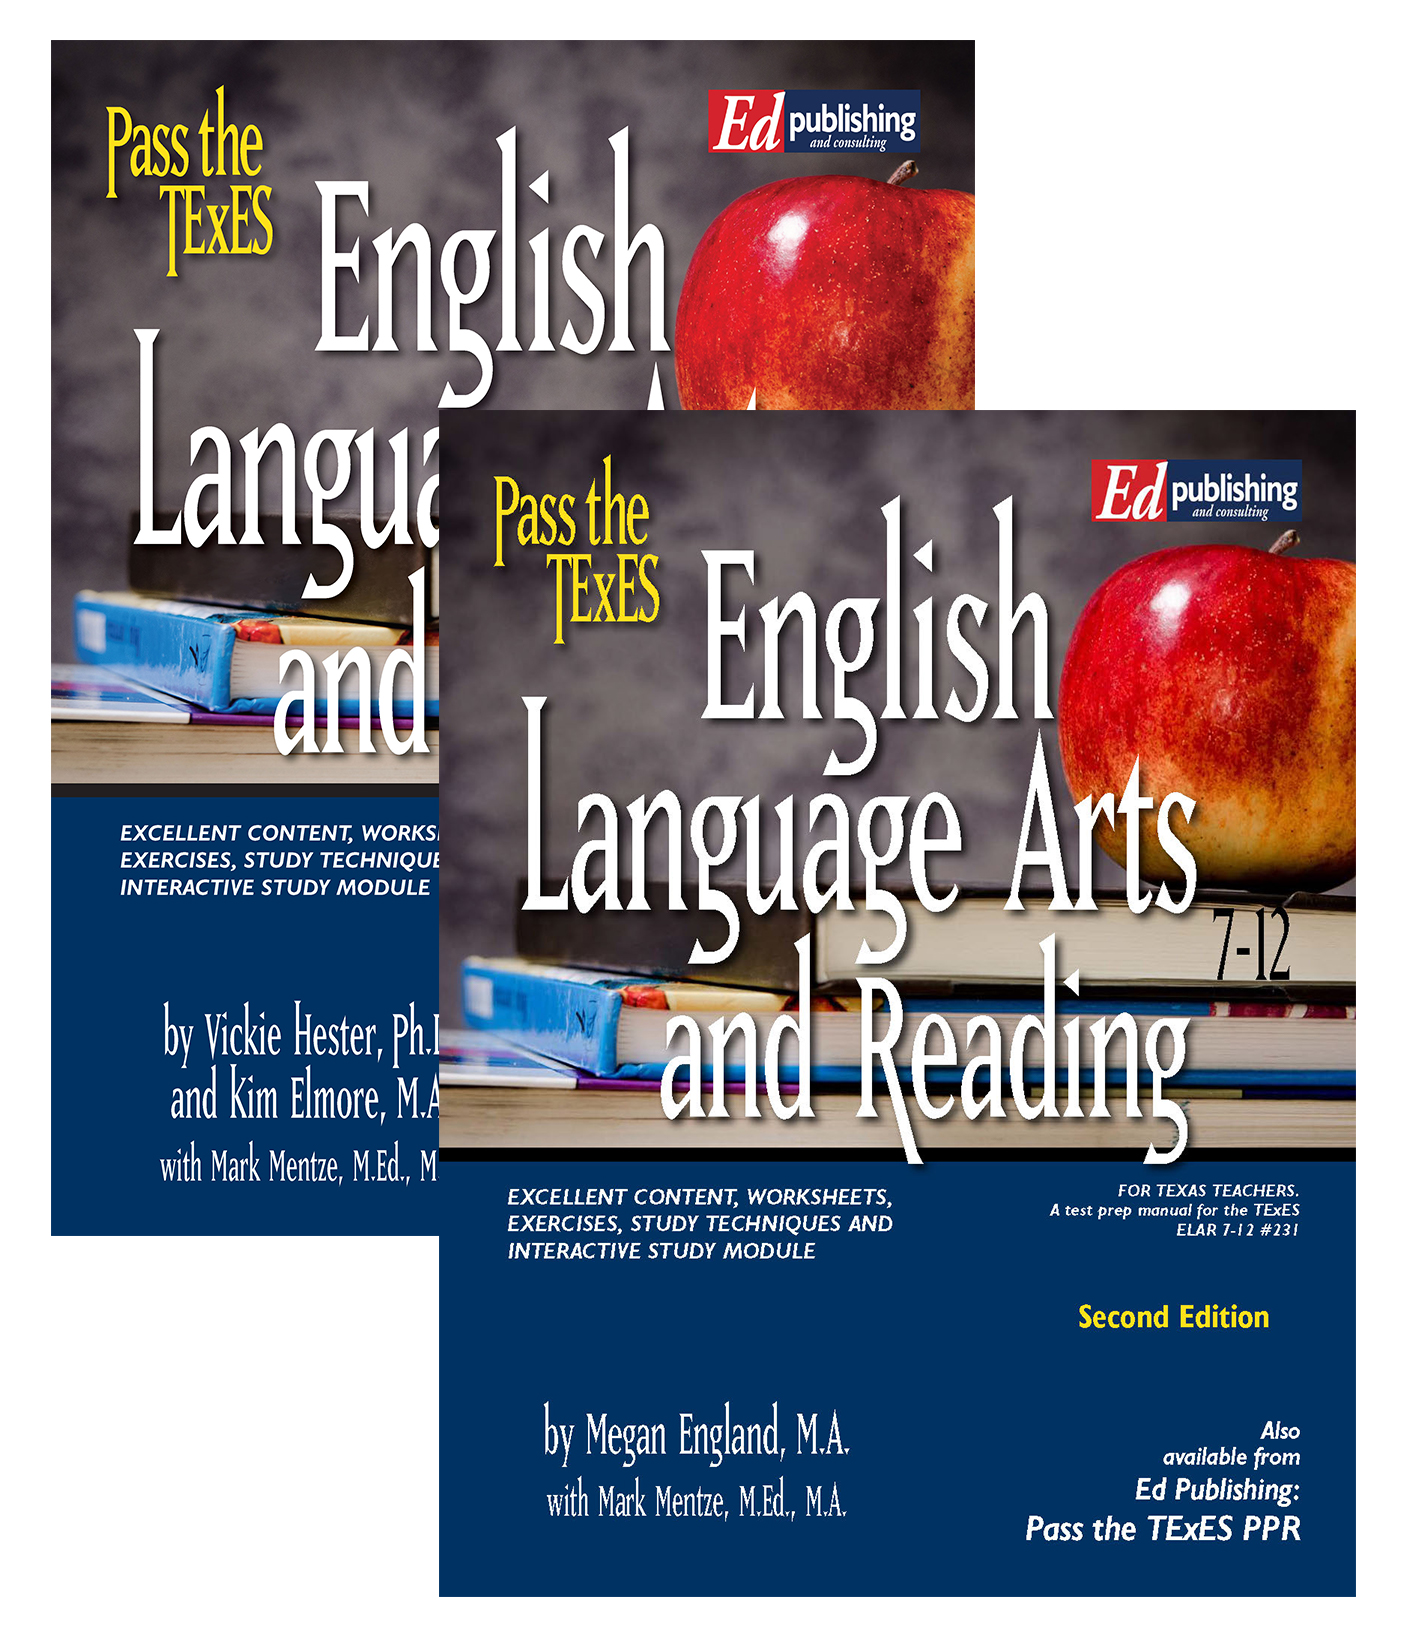 English Language Arts & Reading 7-12 (4-8/8-12 Combo) [ DOWNLOADABLE EBOOKS ]